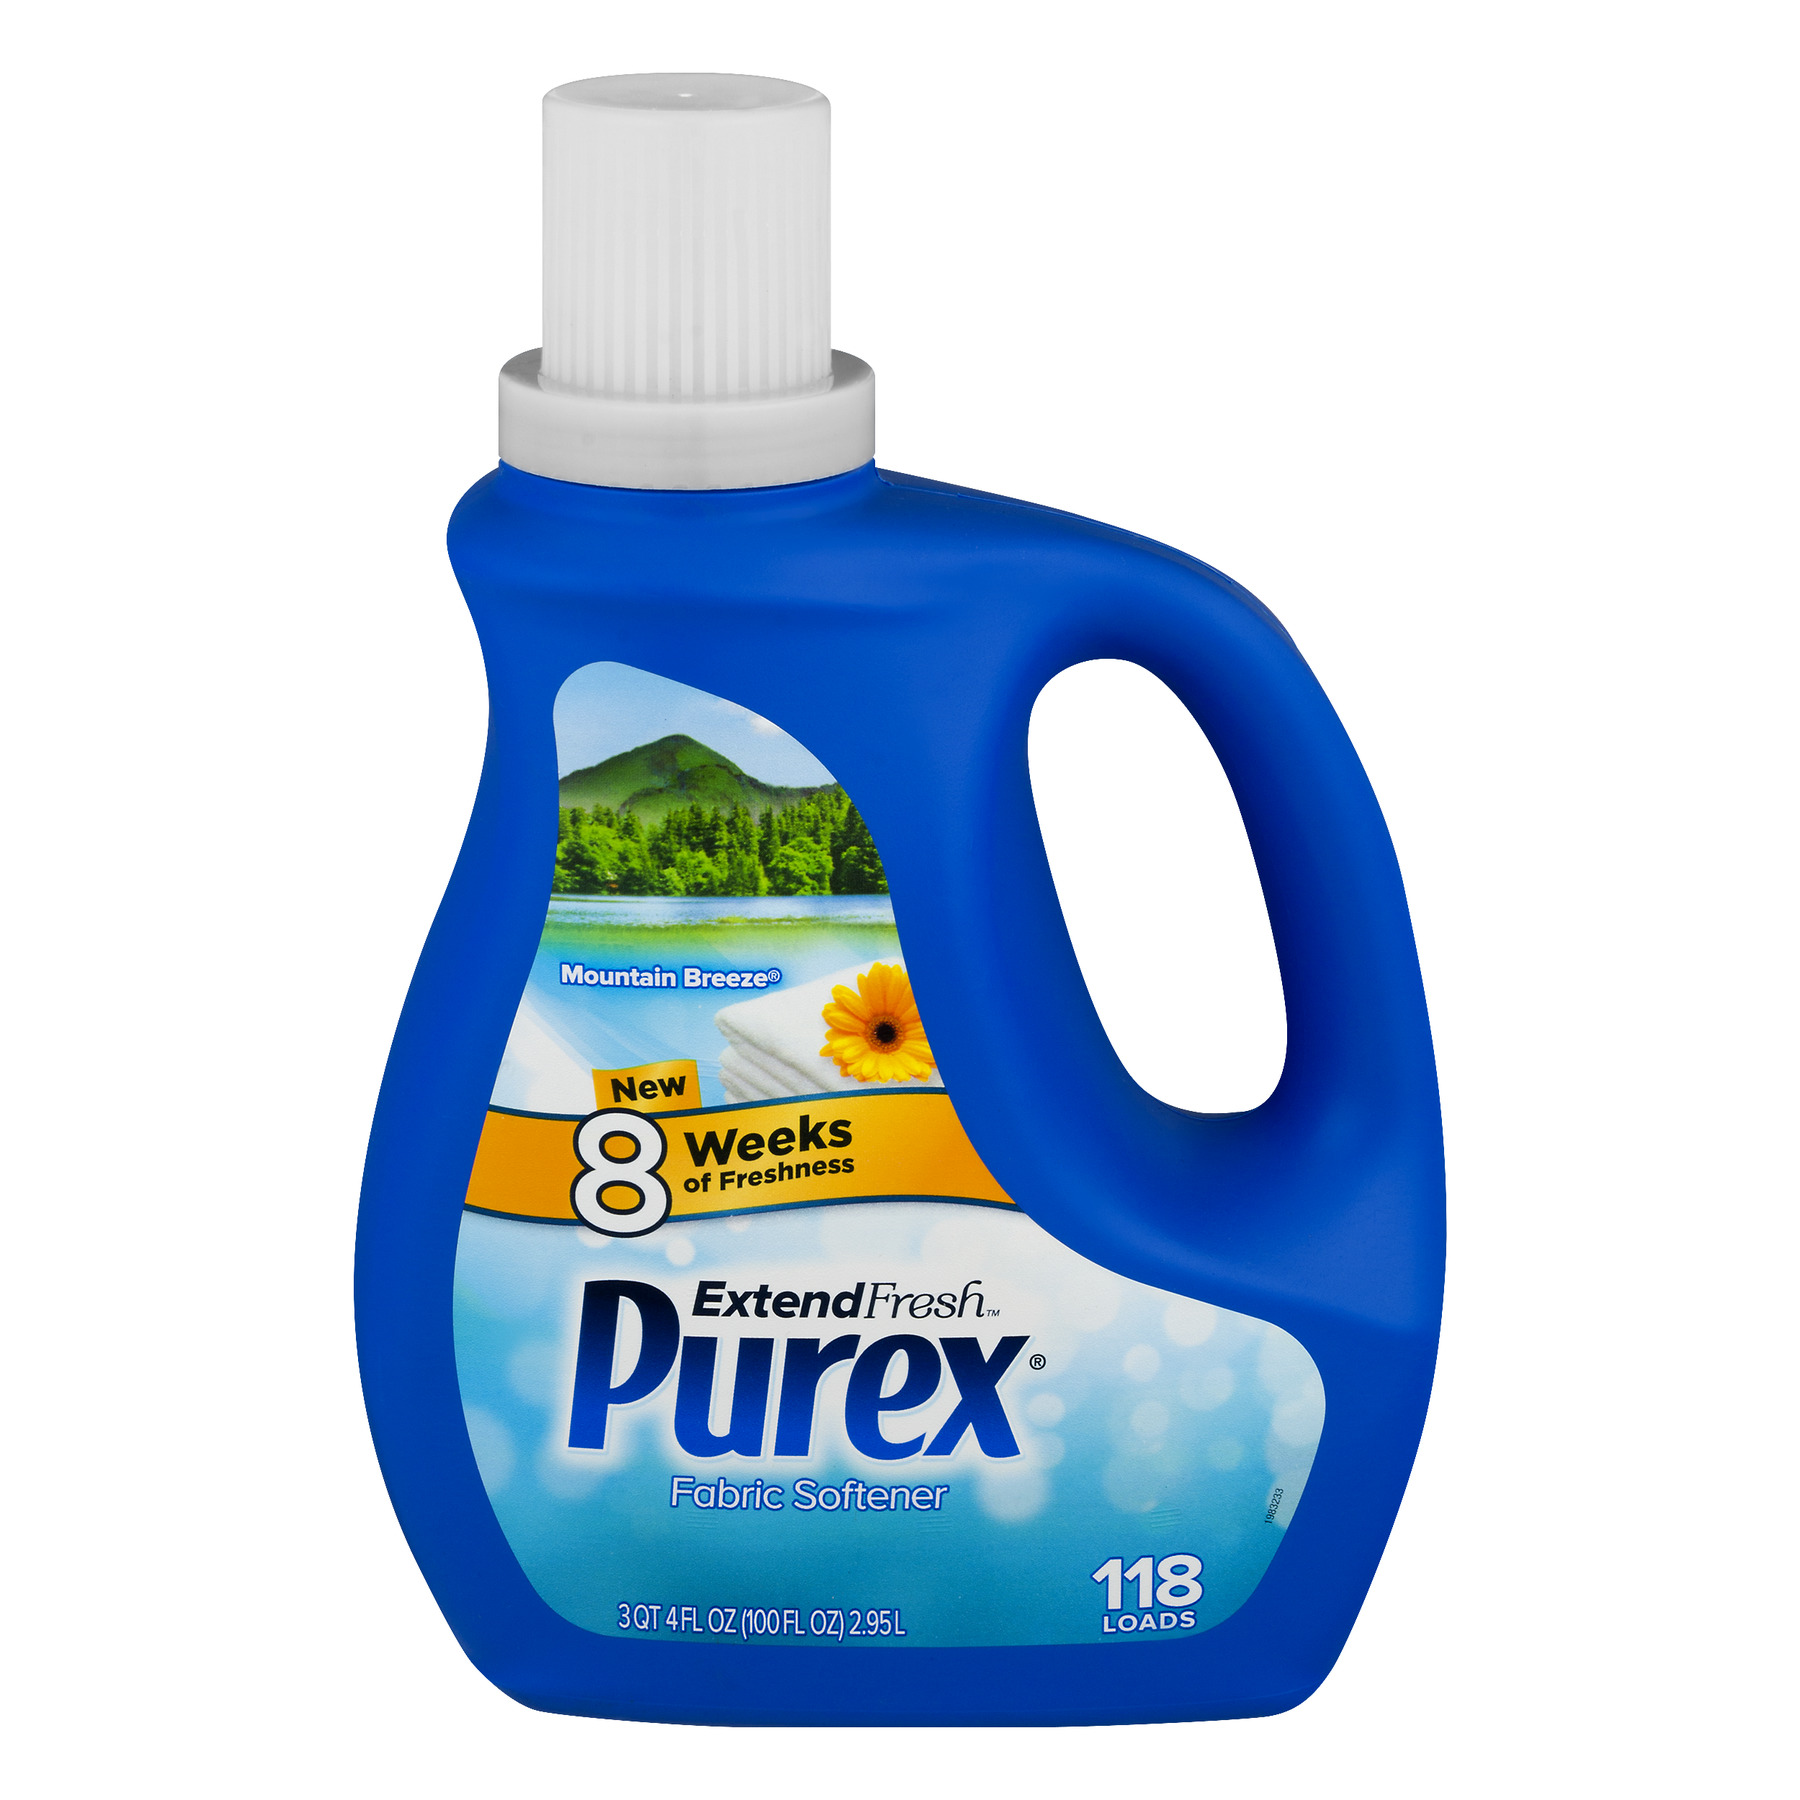 Purex ExtendFresh Liquid Fabric Softener, Mountain Breeze, 100 Ounce, 118 Loads